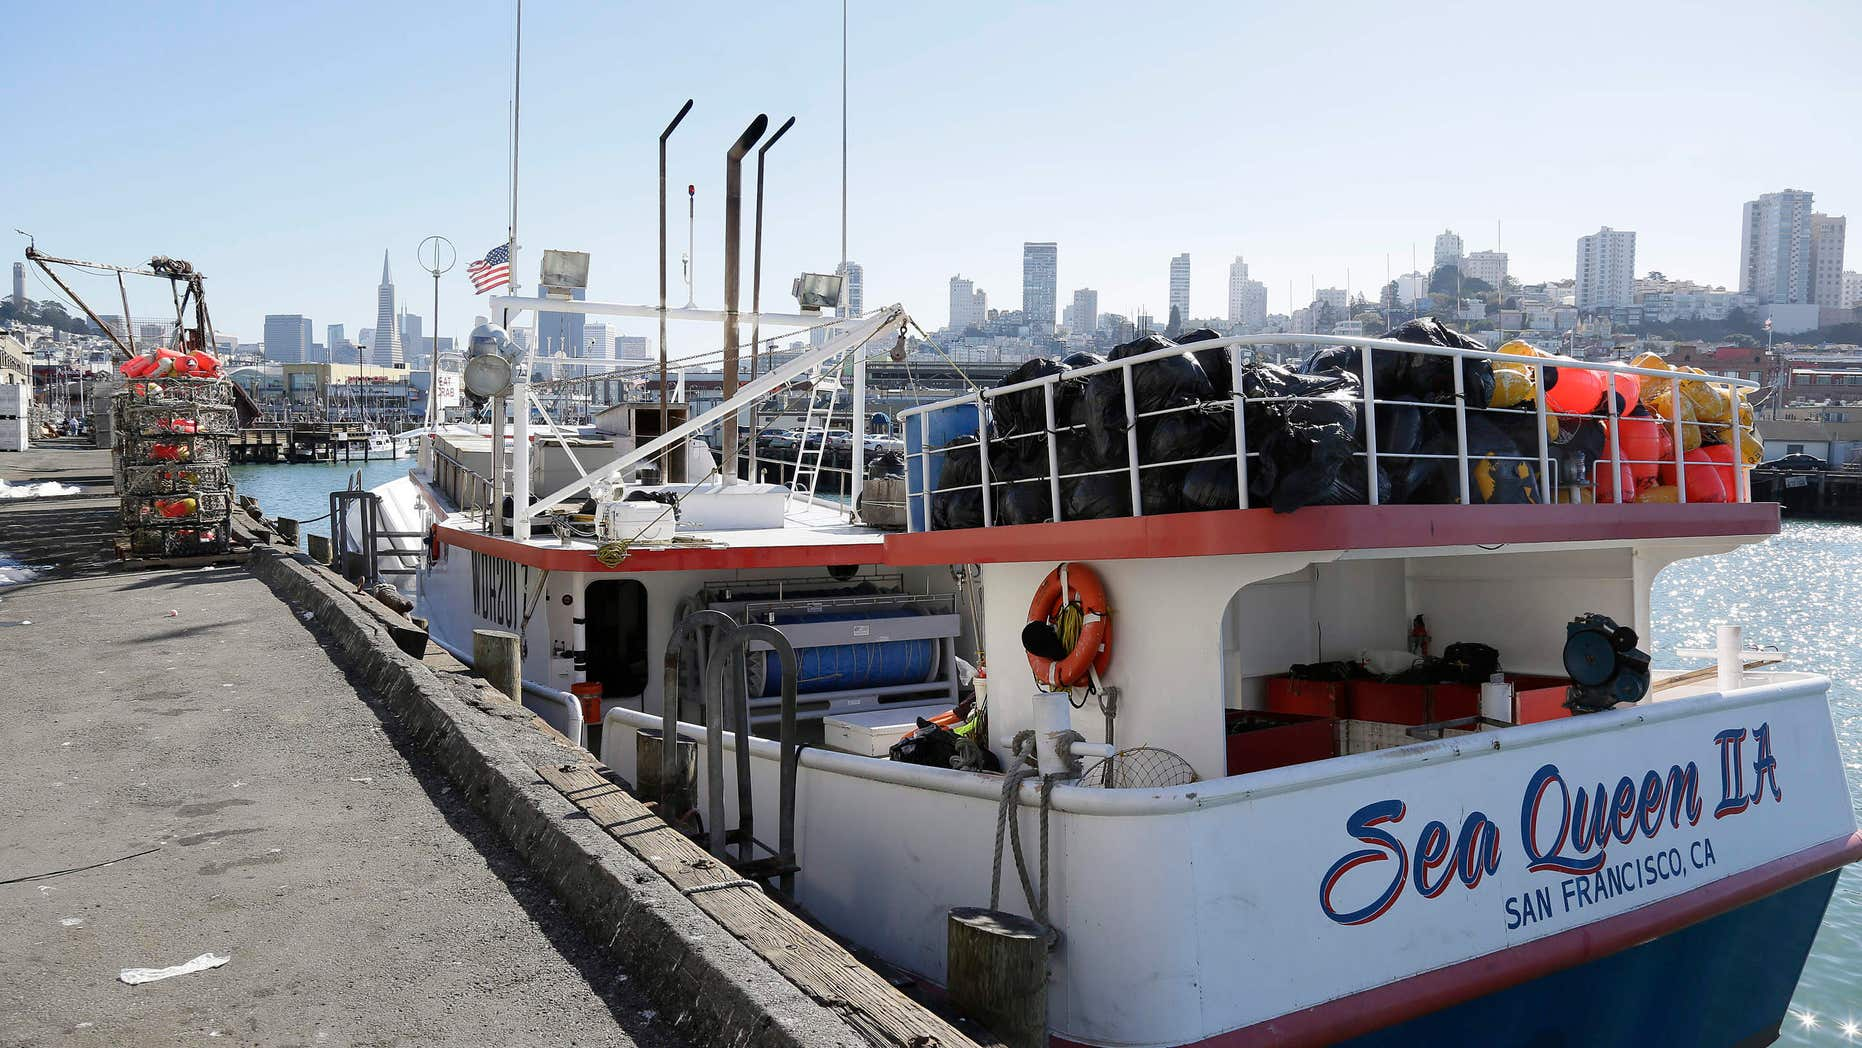 In this photo taken Friday, Nov. 6, 2015, is the Sea Queen II docked at Fisherman's Wharf in San Francisco.